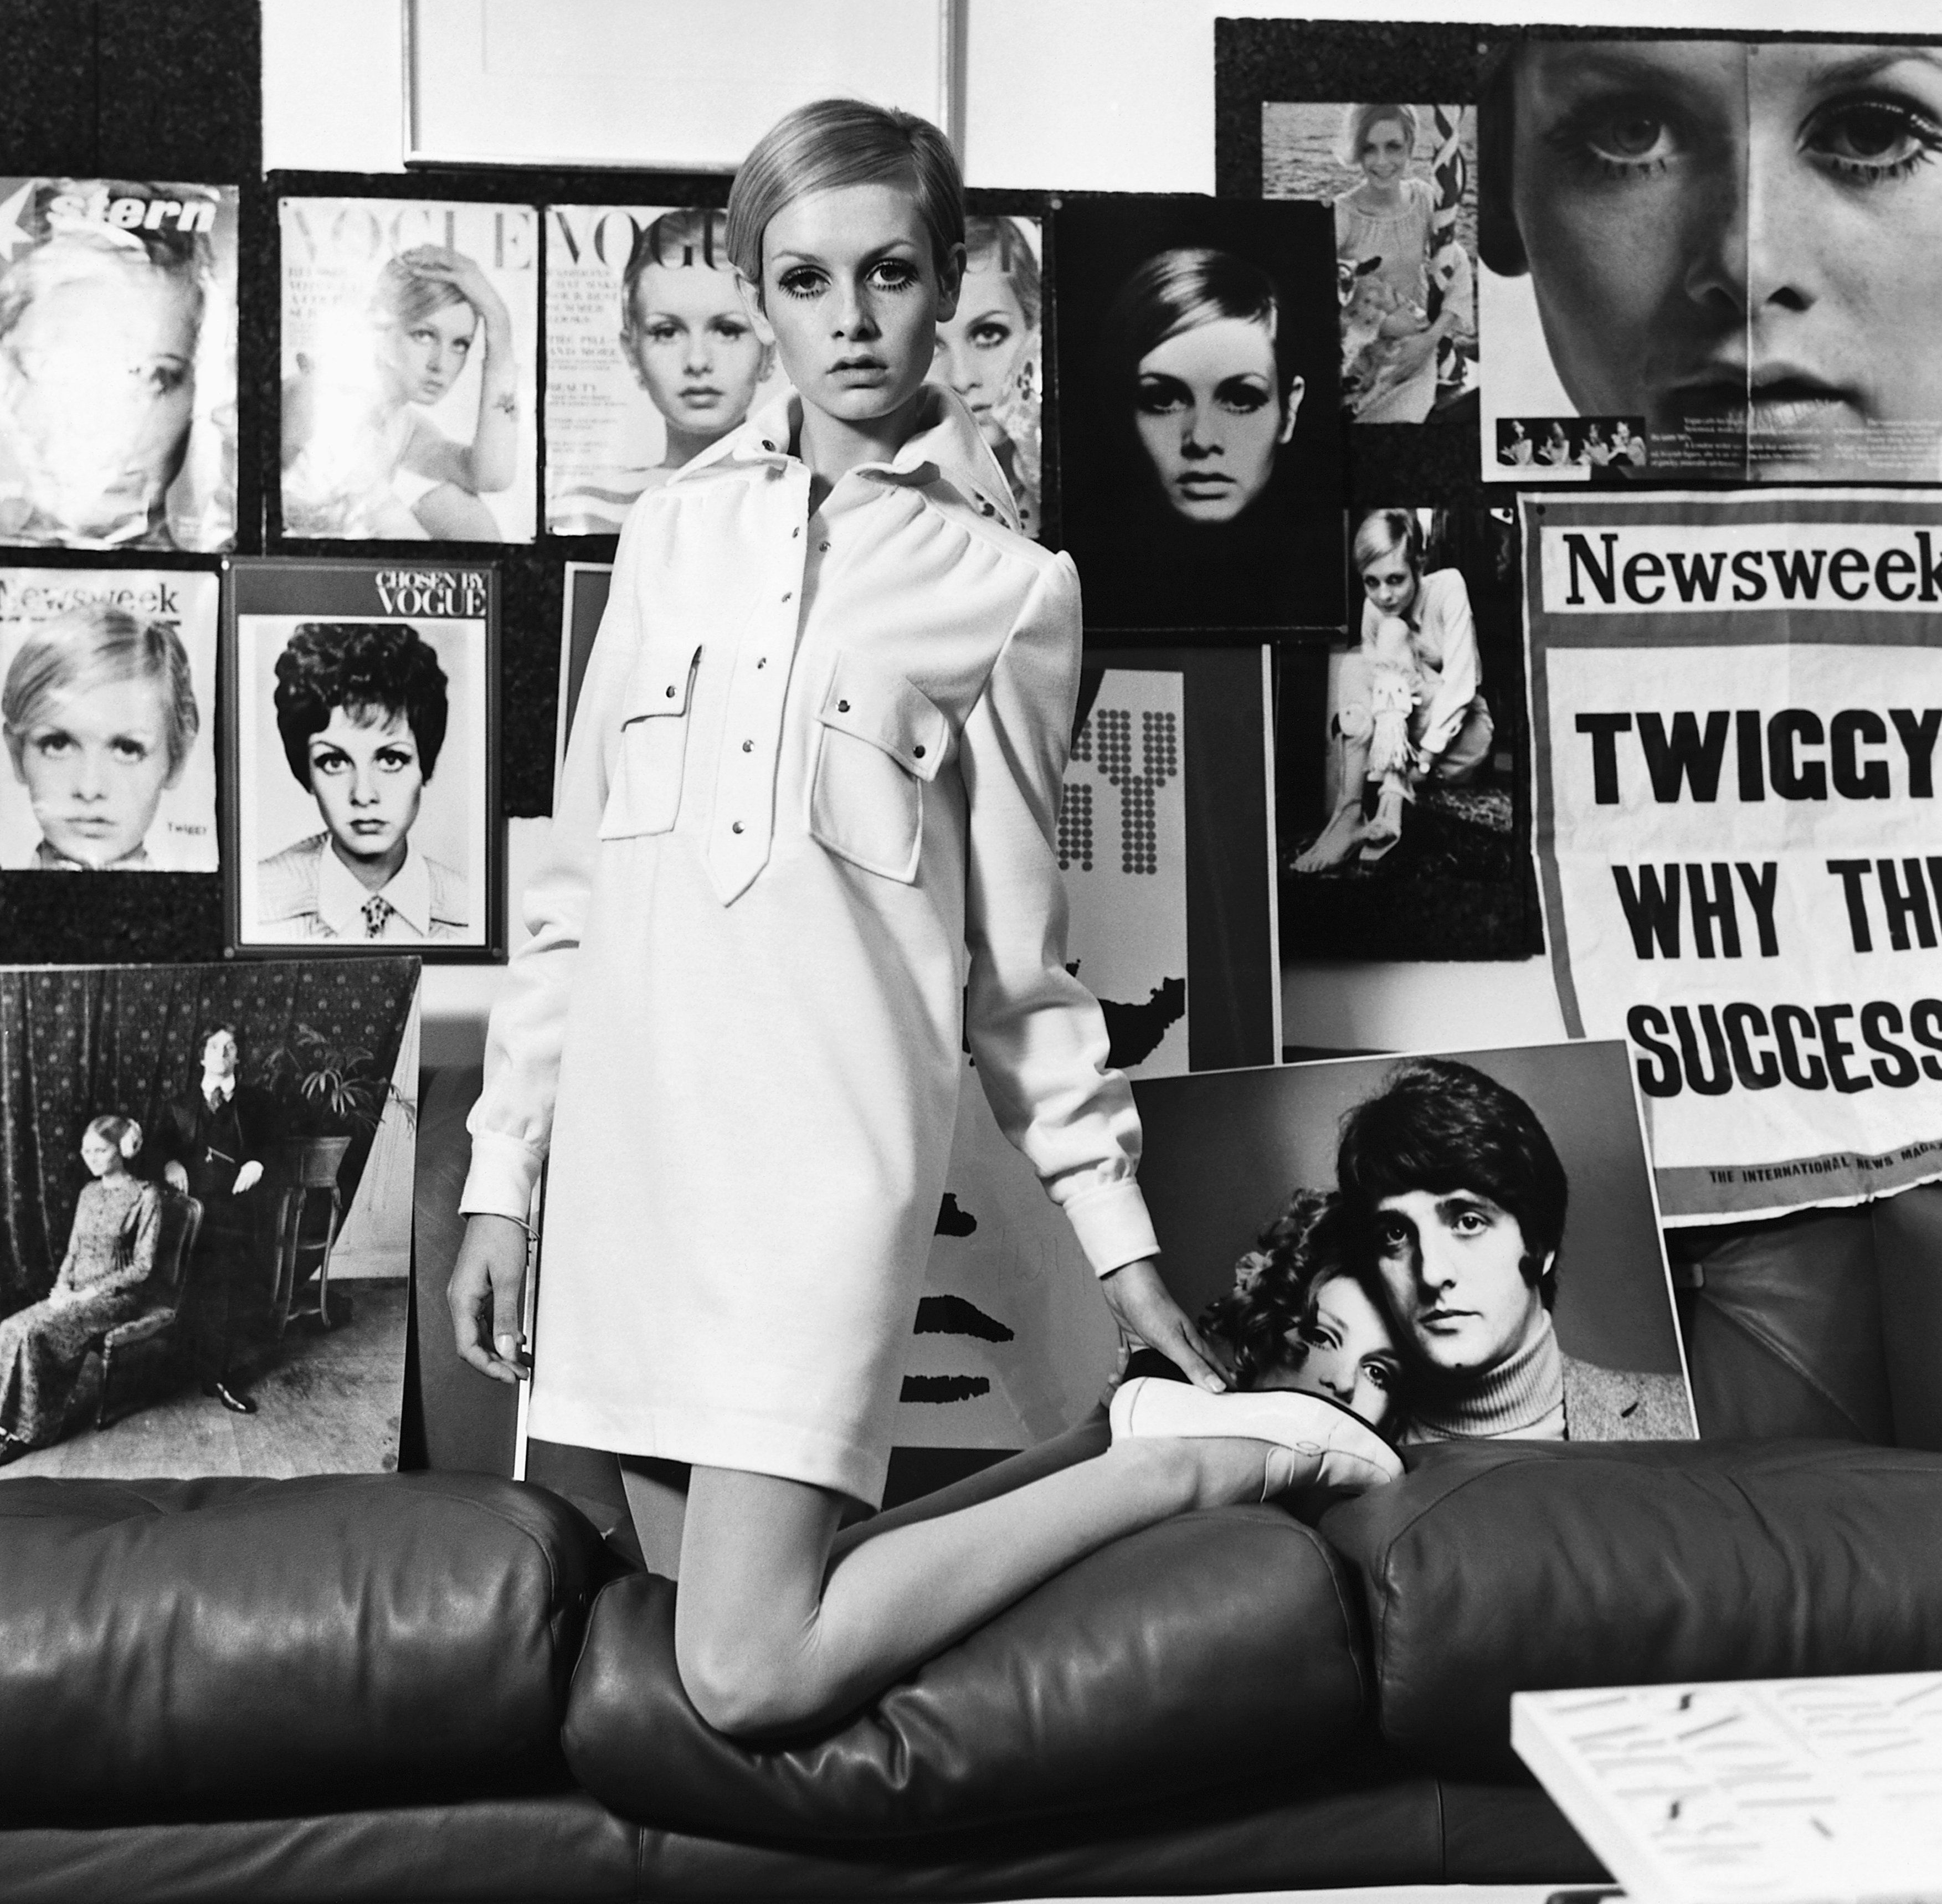 Twiggy models a shirt dress amid posters of her previous work.